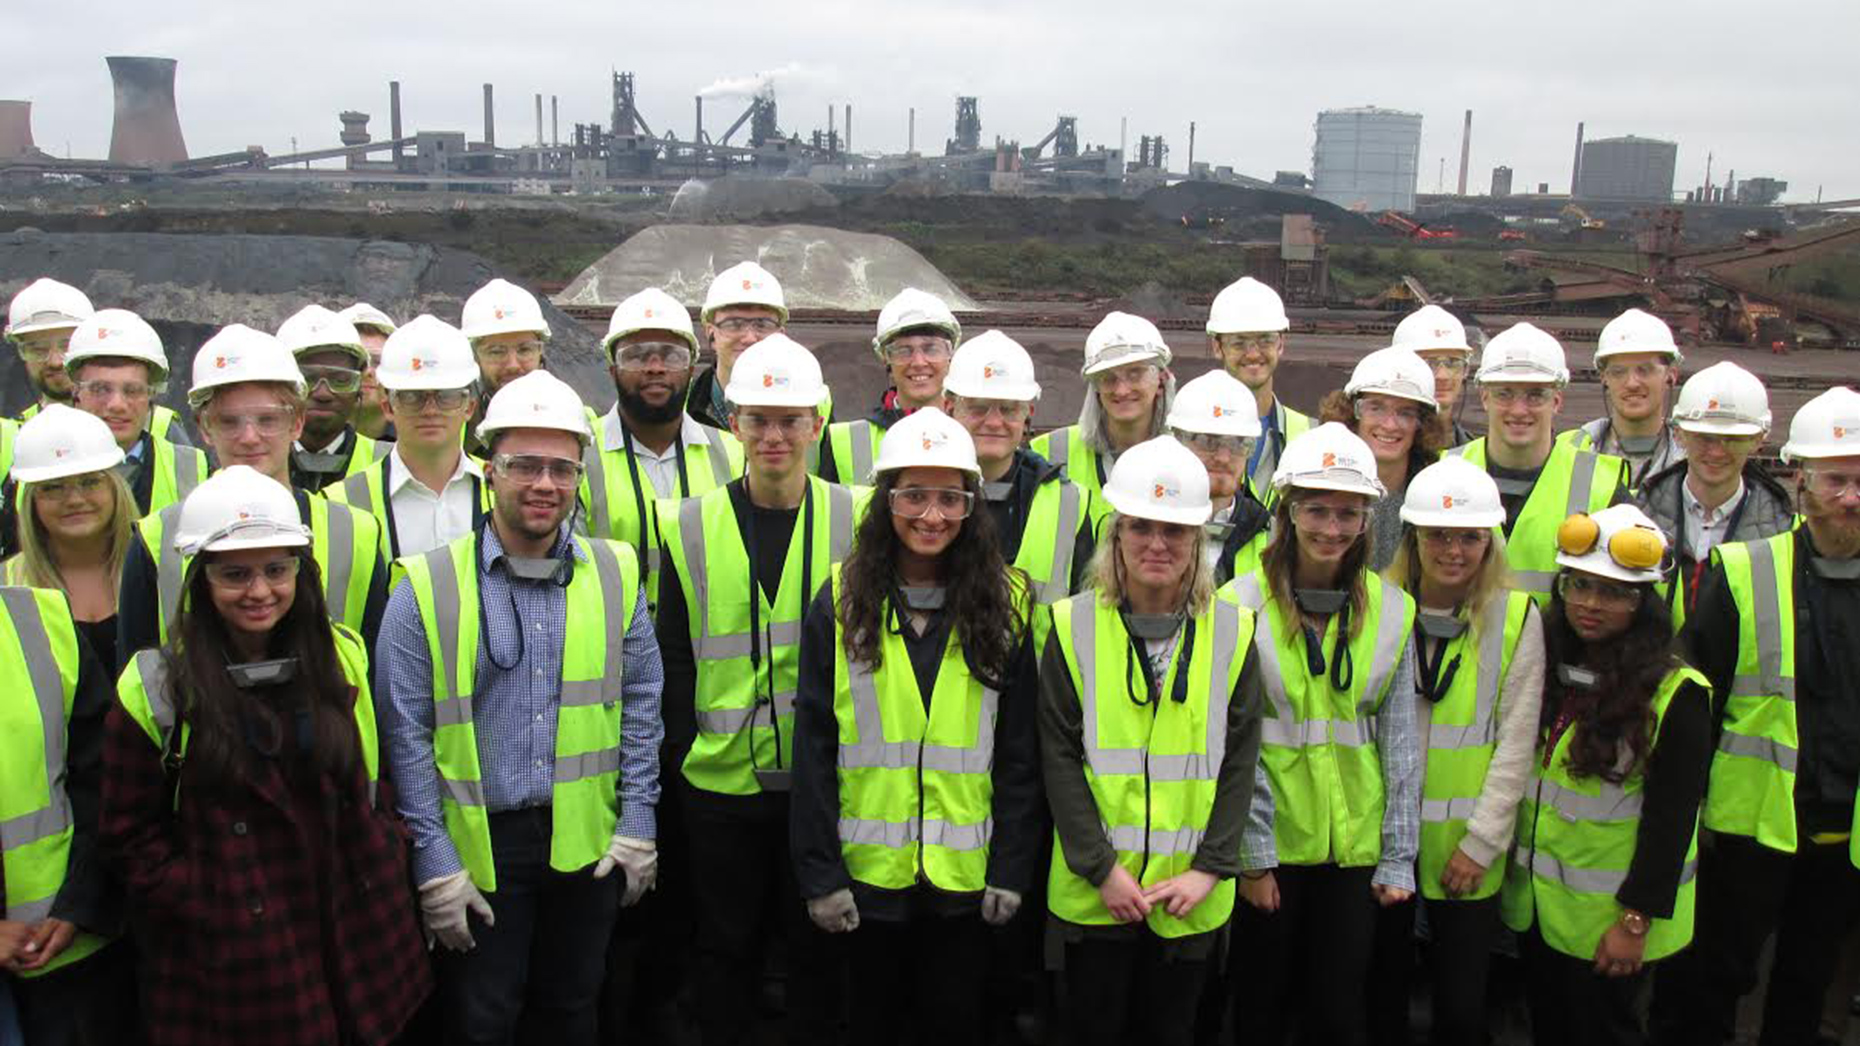 British Steel: British Steel Welcomes 74 New Employees To Scunthorpe Site